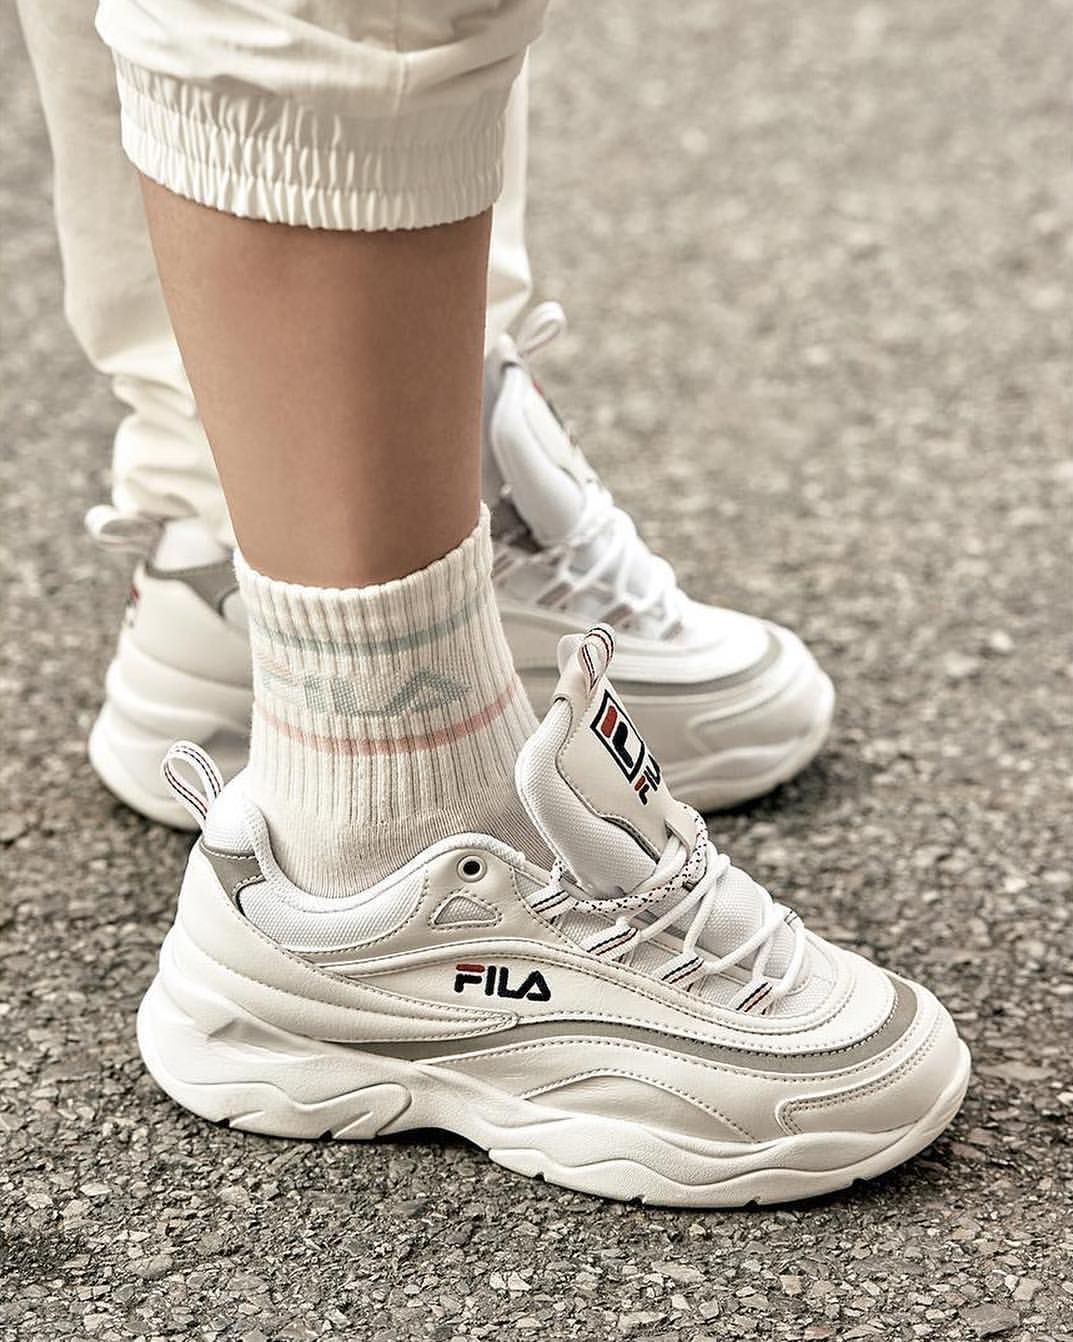 7cba9c1cfbc FILA Ray | Shoes in 2019 | Dad shoes, Sneakers, 90s sneakers